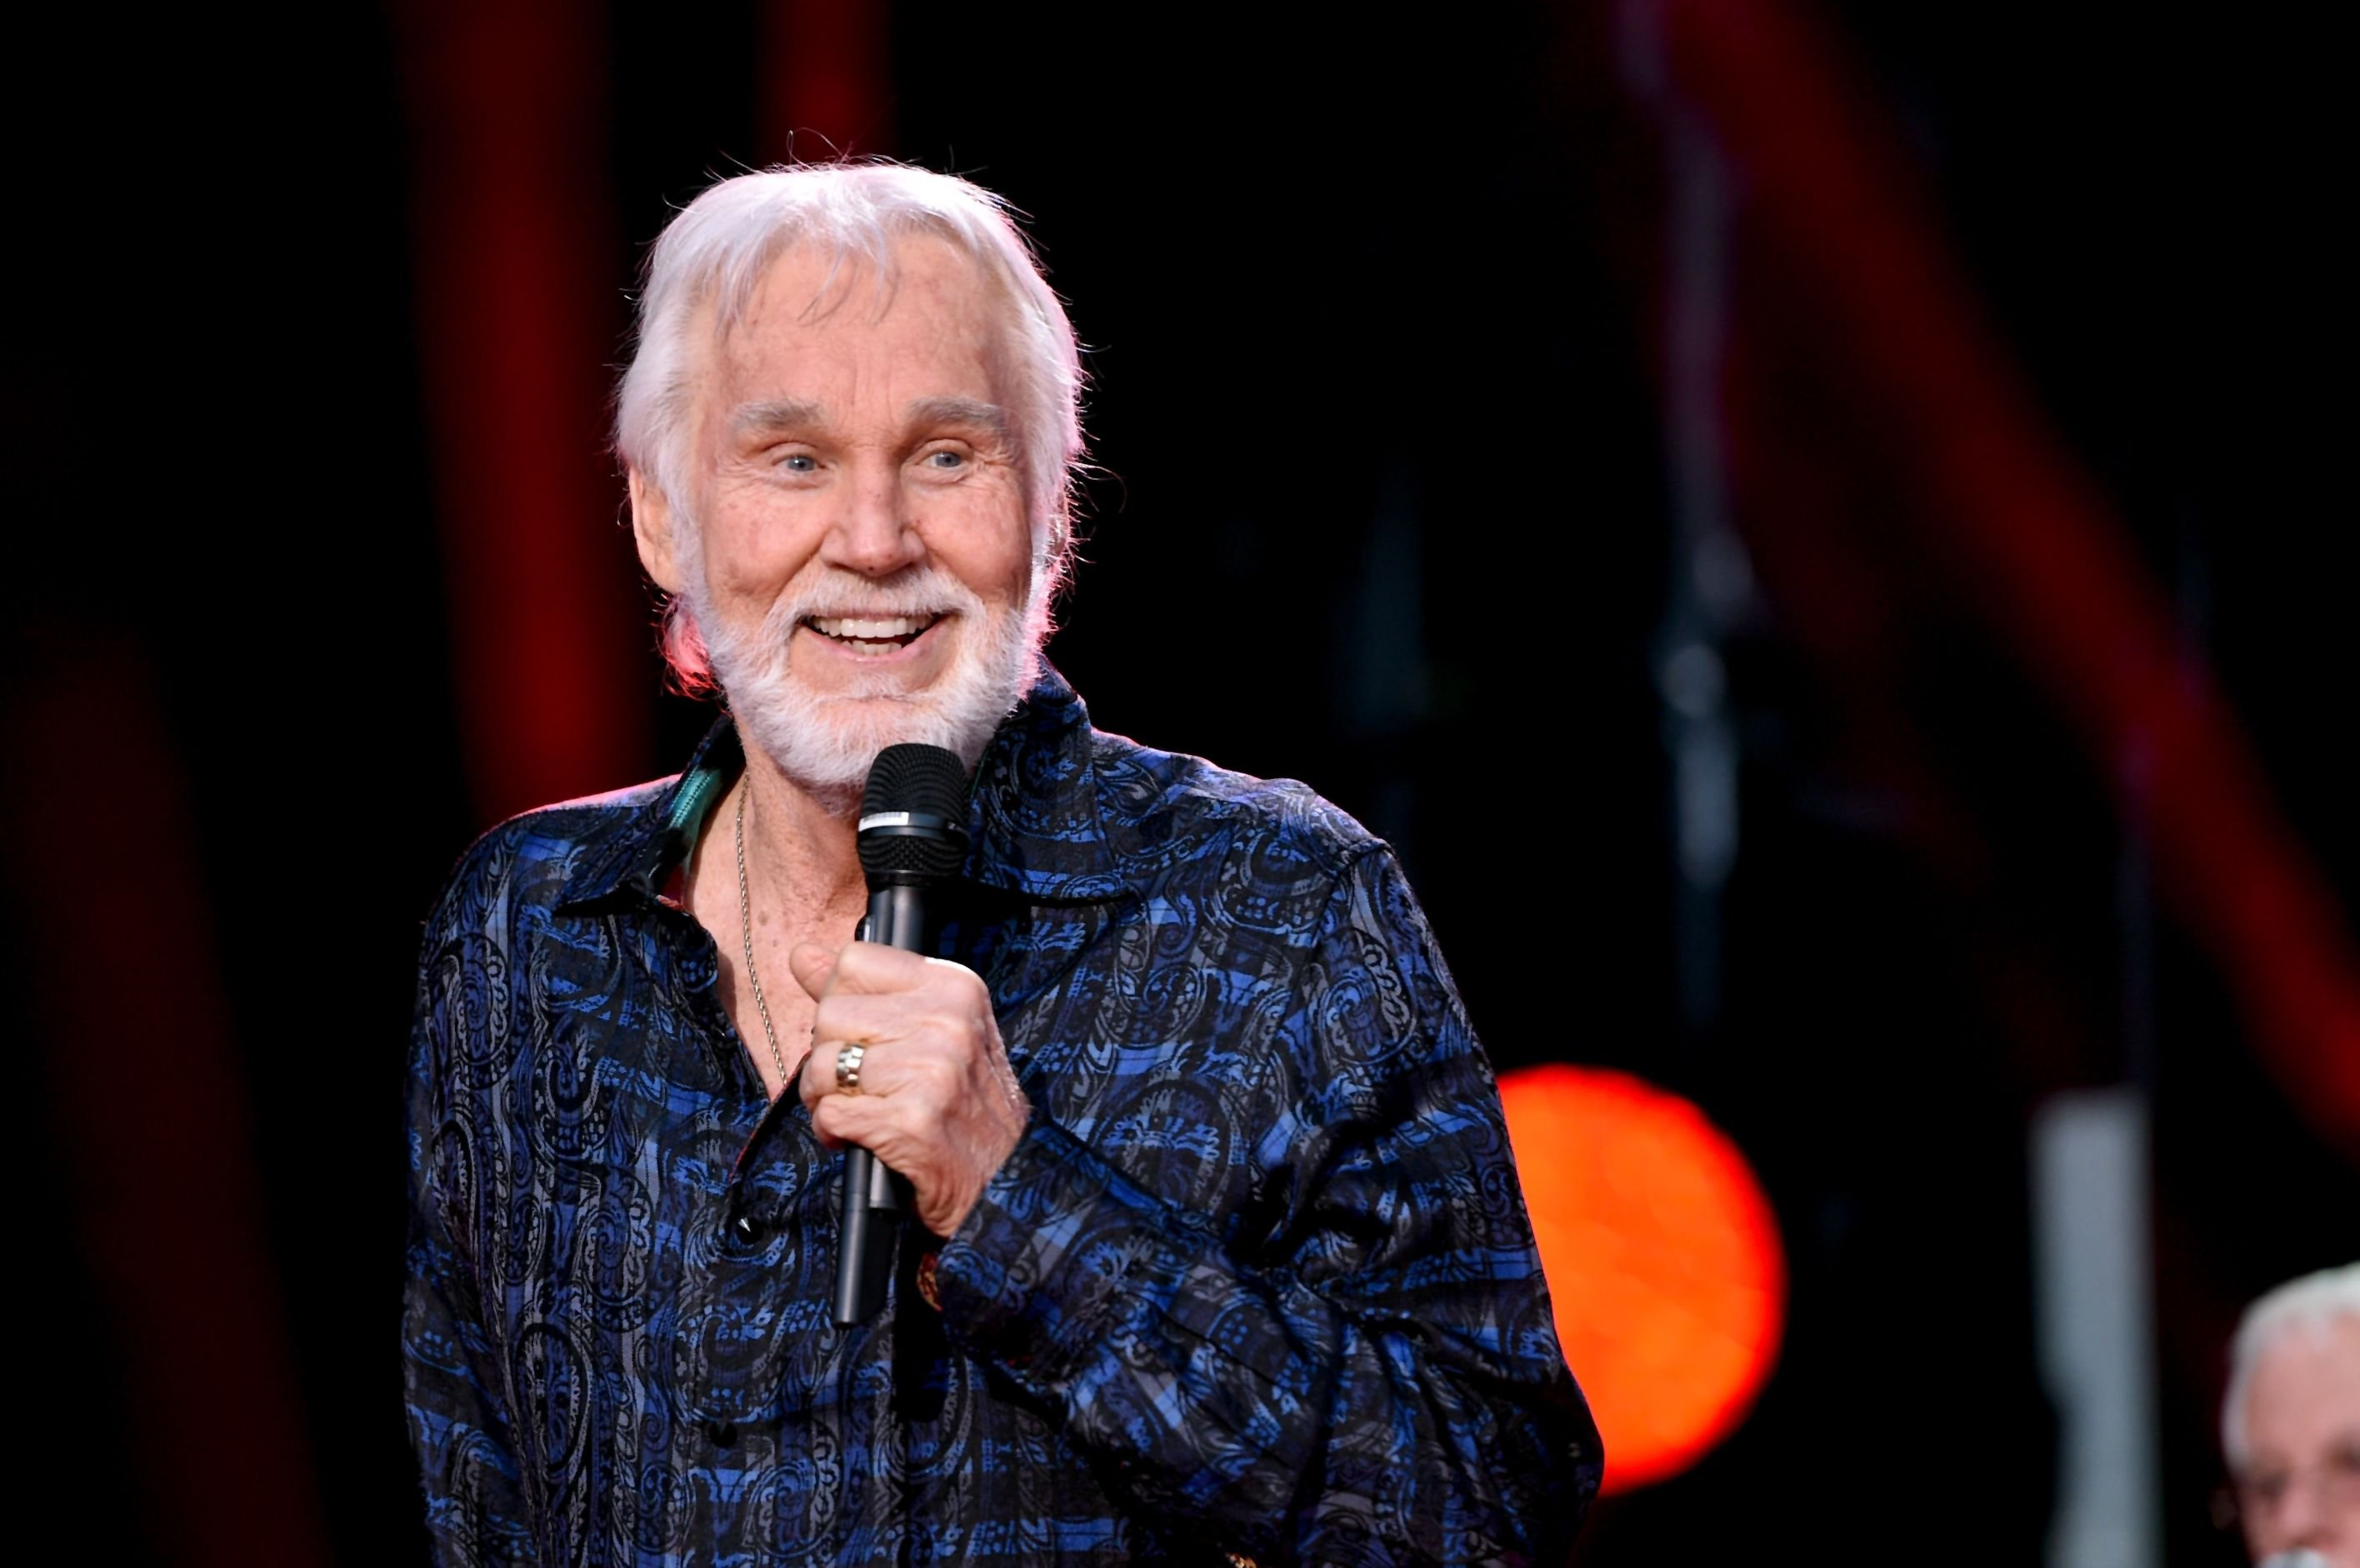 Kenny Rogers on June 8, 2017 in Nashville, Tennessee. | Photo: Getty Images